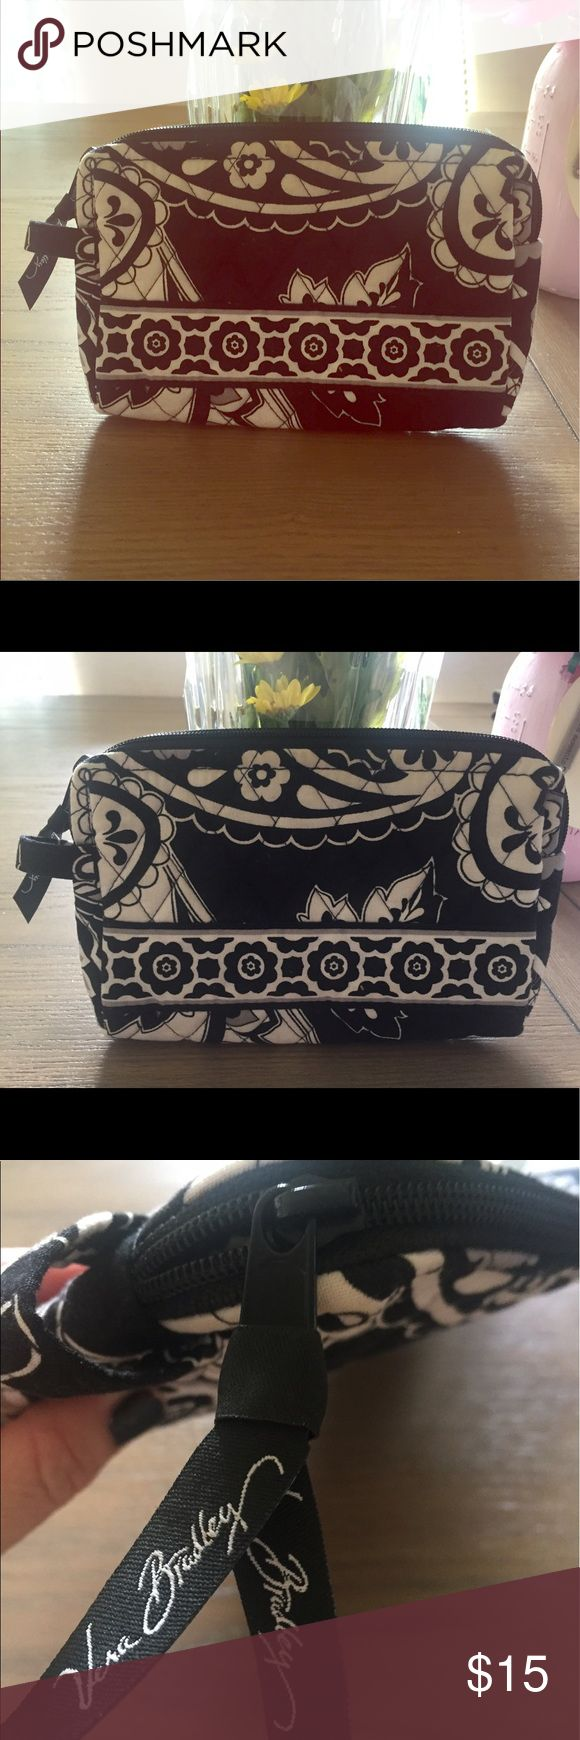 Vera Bradley Small Cosmetic Bag authentic🖤 Small Cosmetic Bag - black and white - never used - brand new! great for the beach or makeup. Dimensions are 7''x4'' x 1 1/4 '' -durable plastic liner- Vera Bradley Bags Mini Bags